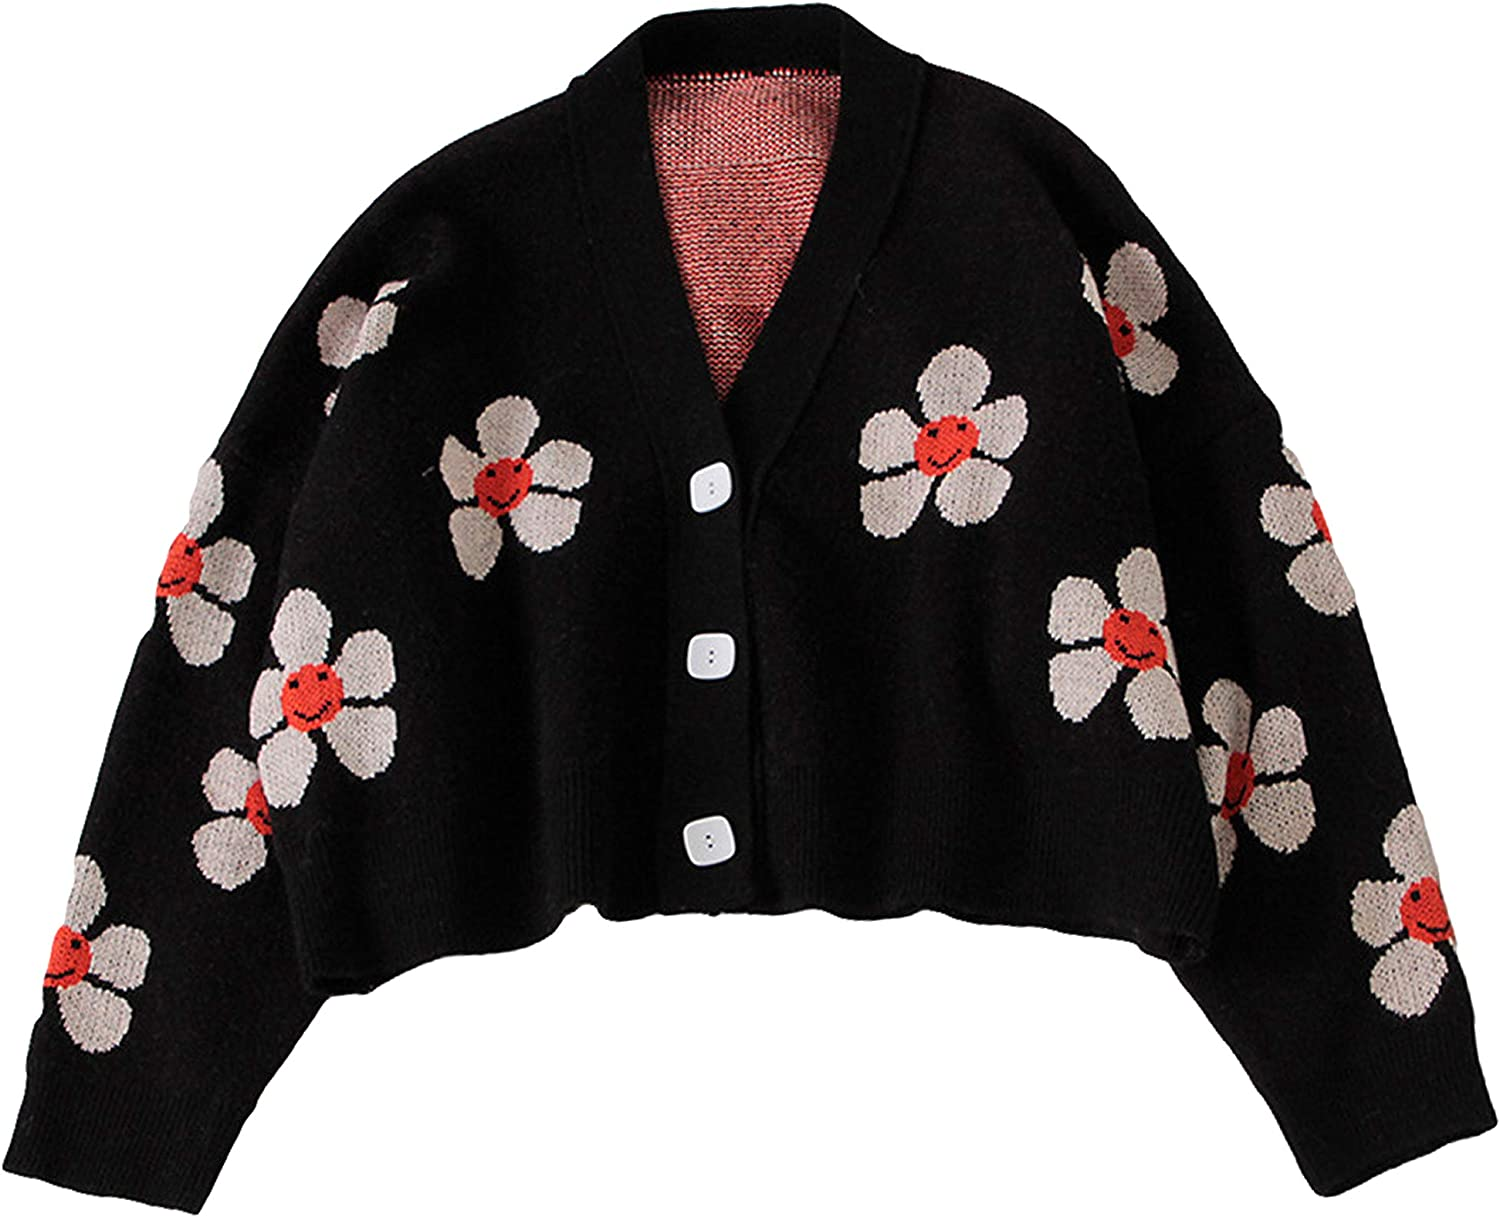 Uaneo Womens Knit Floral Print V Neck Button Front Cropped Cardigan Sweaters(Black-One Size)